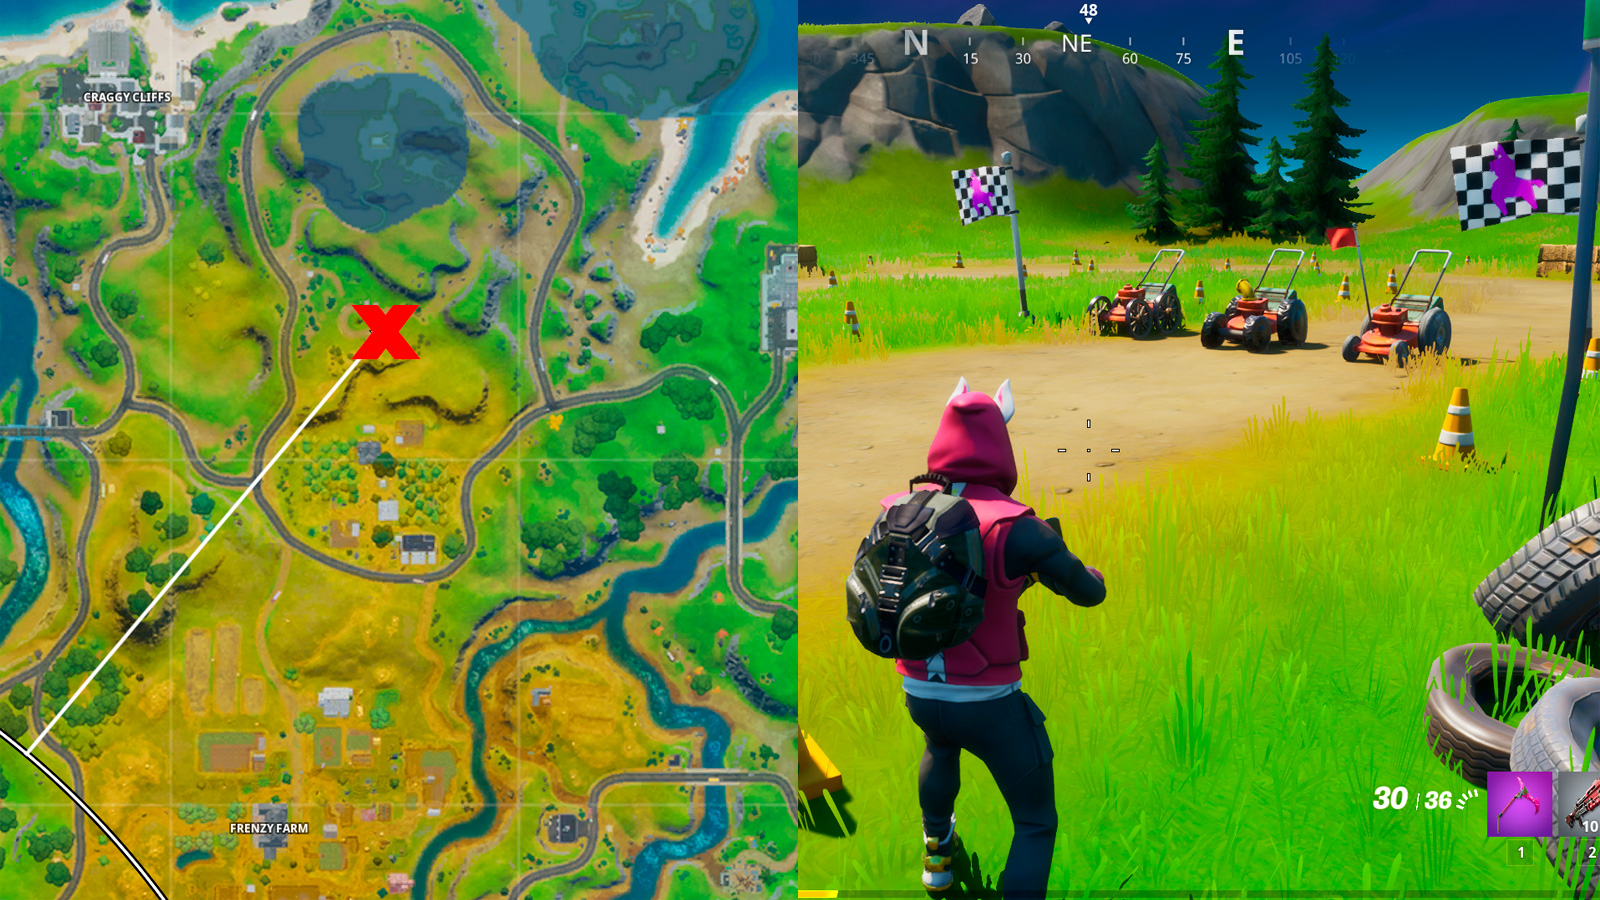 Map and location of Mowdown spot in Fortnite.